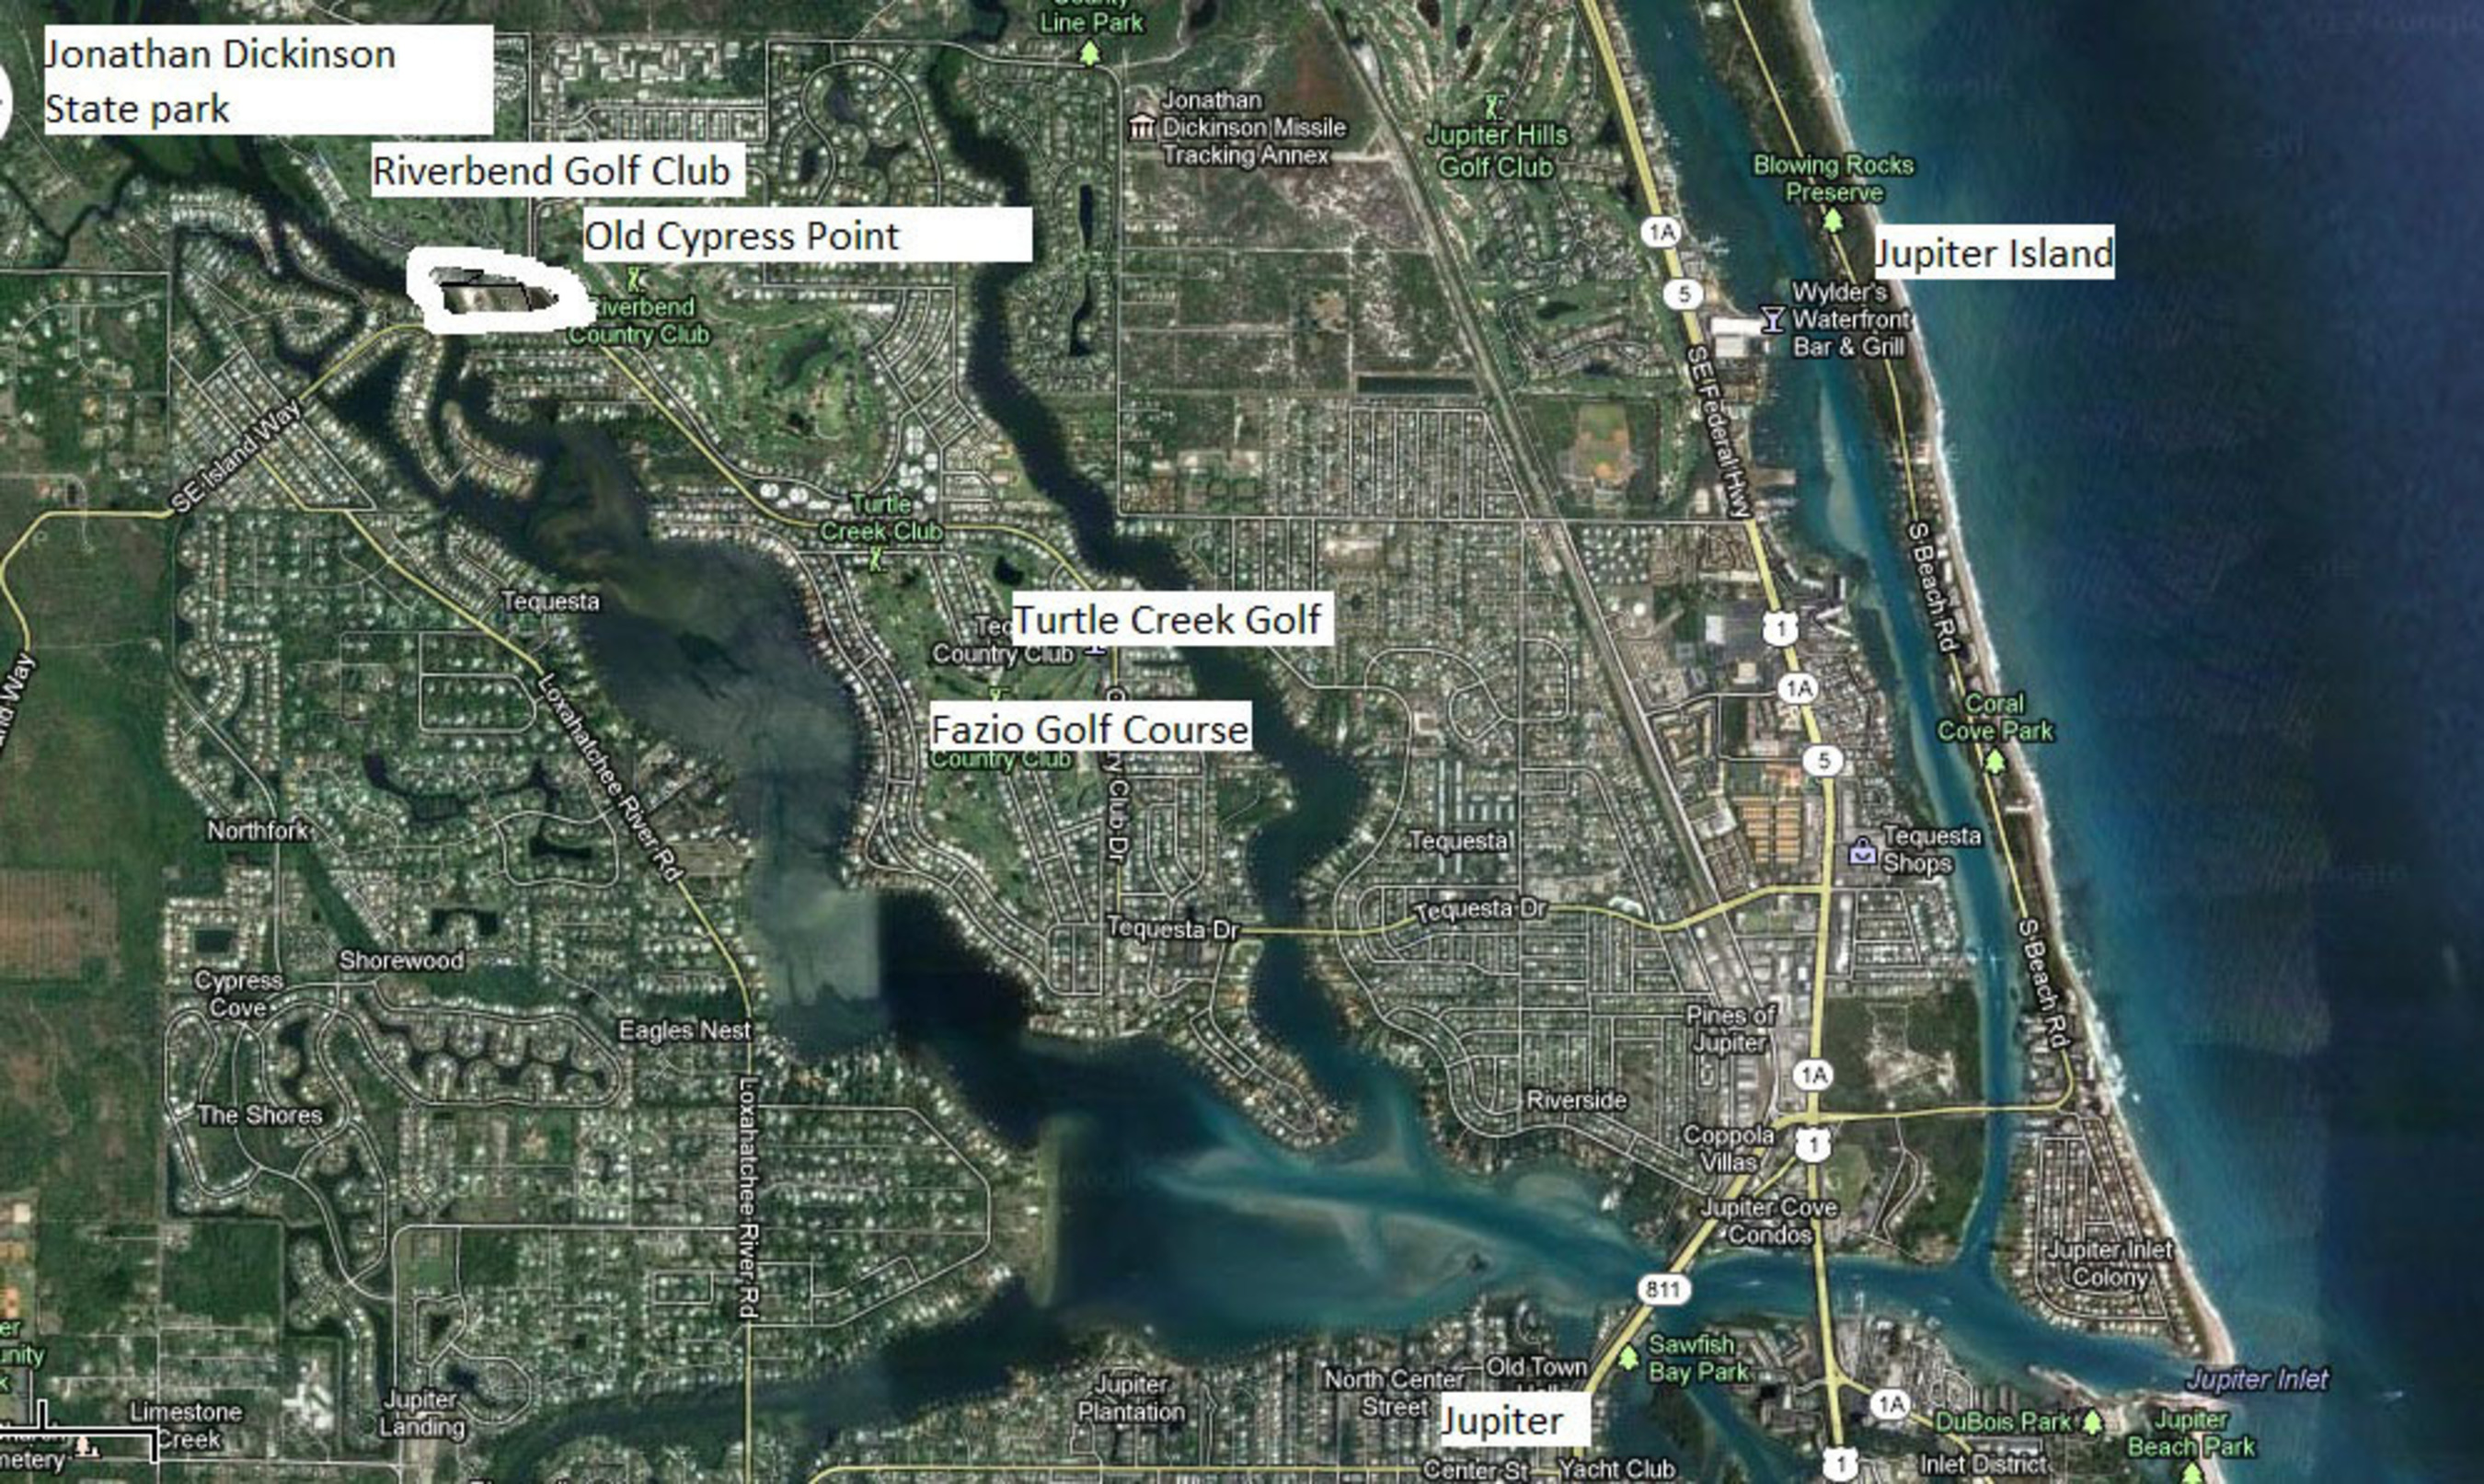 Jupiter and Tequesta on the Loxahatchee River in  Florida. Next to Jonathan Dickinson State Park. At the end of the North fork of the river which gives easy access to the Atlantic ocean is Old Cypress Pointe, a small private luxury enclave surrounded by  ...